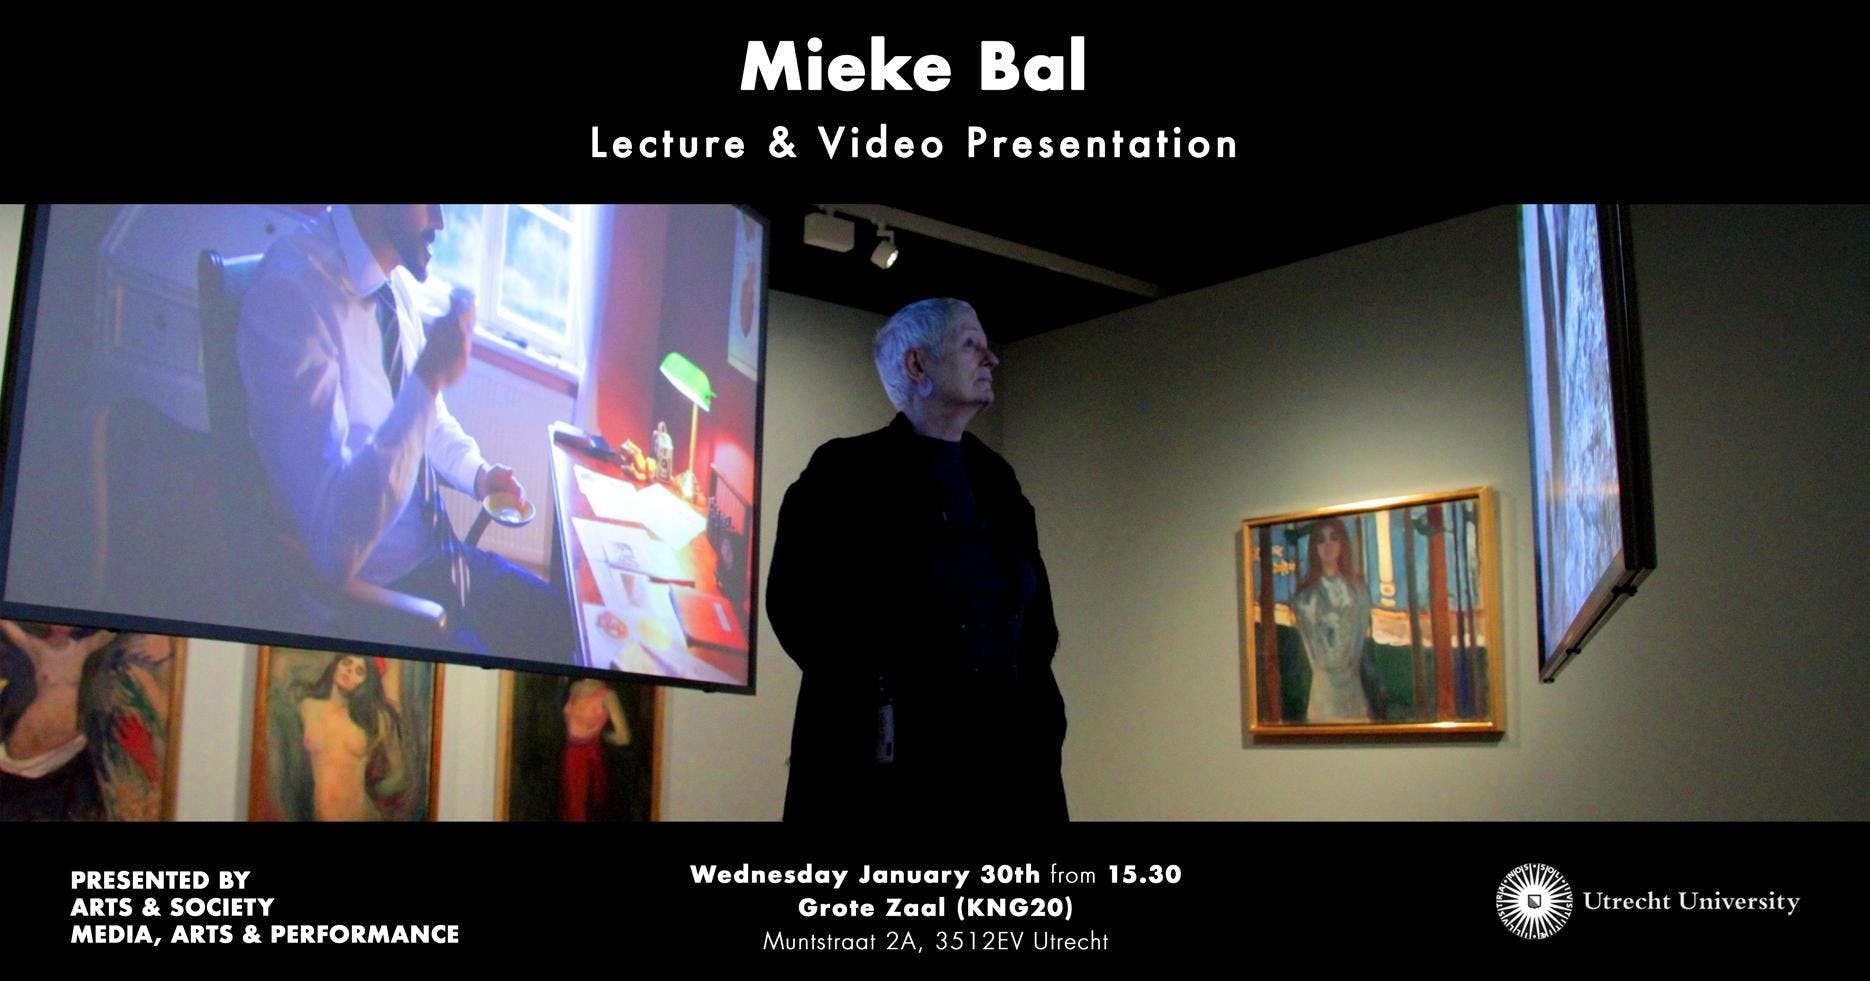 Mieke Bal - Lecture & Video Presentation